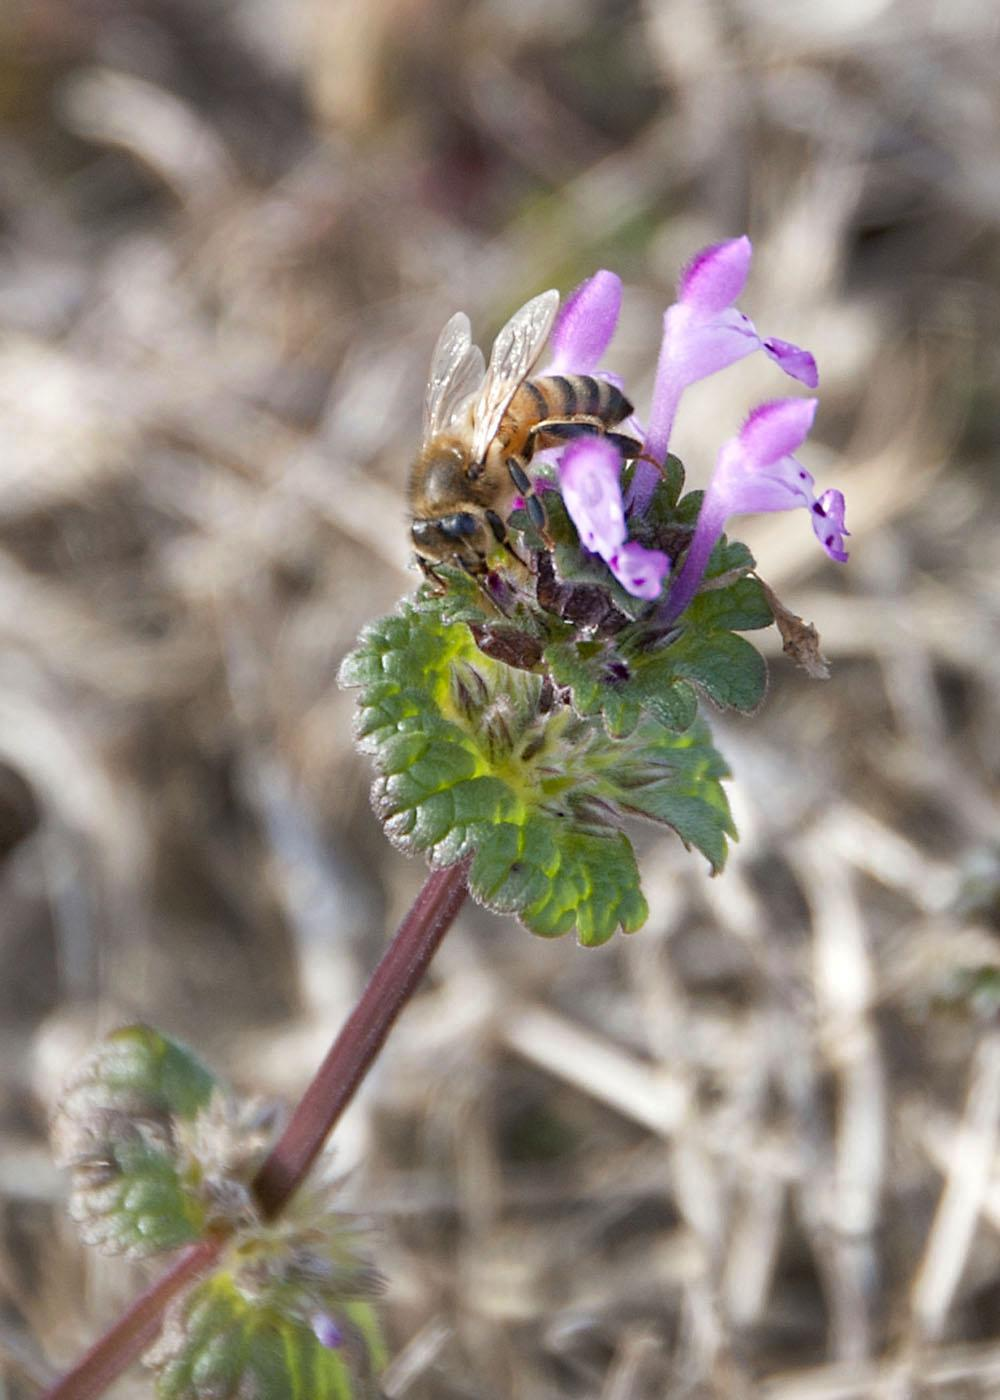 Honey bees forage on flowers, such as henbit, about a month earlier than usual due to warm winter temperatures. (Photo by Kat Lawrence)